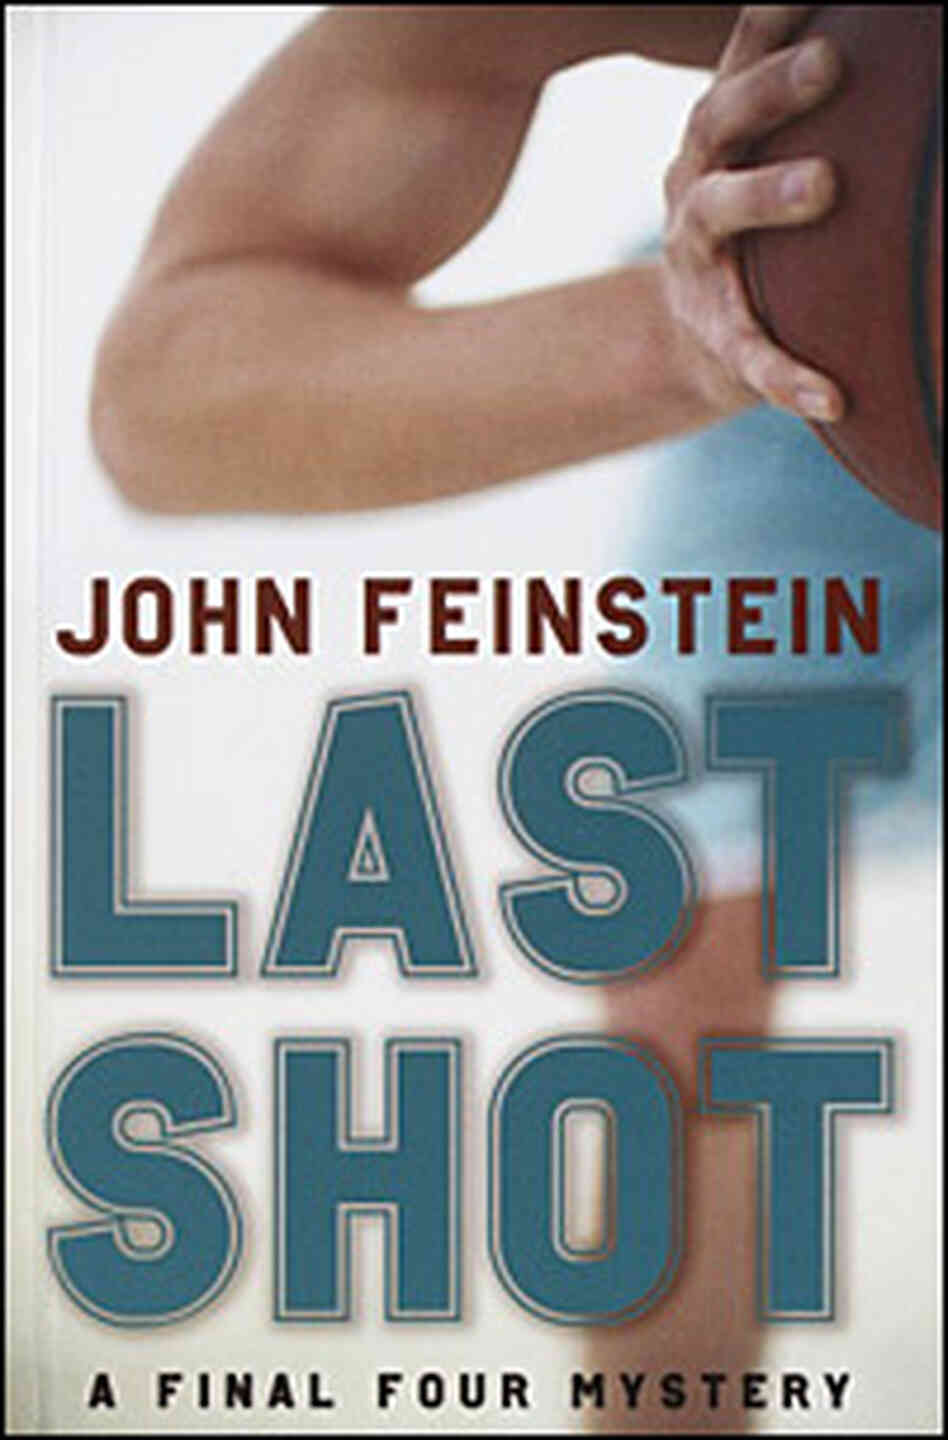 Detail from the Cover of 'Last Shot'